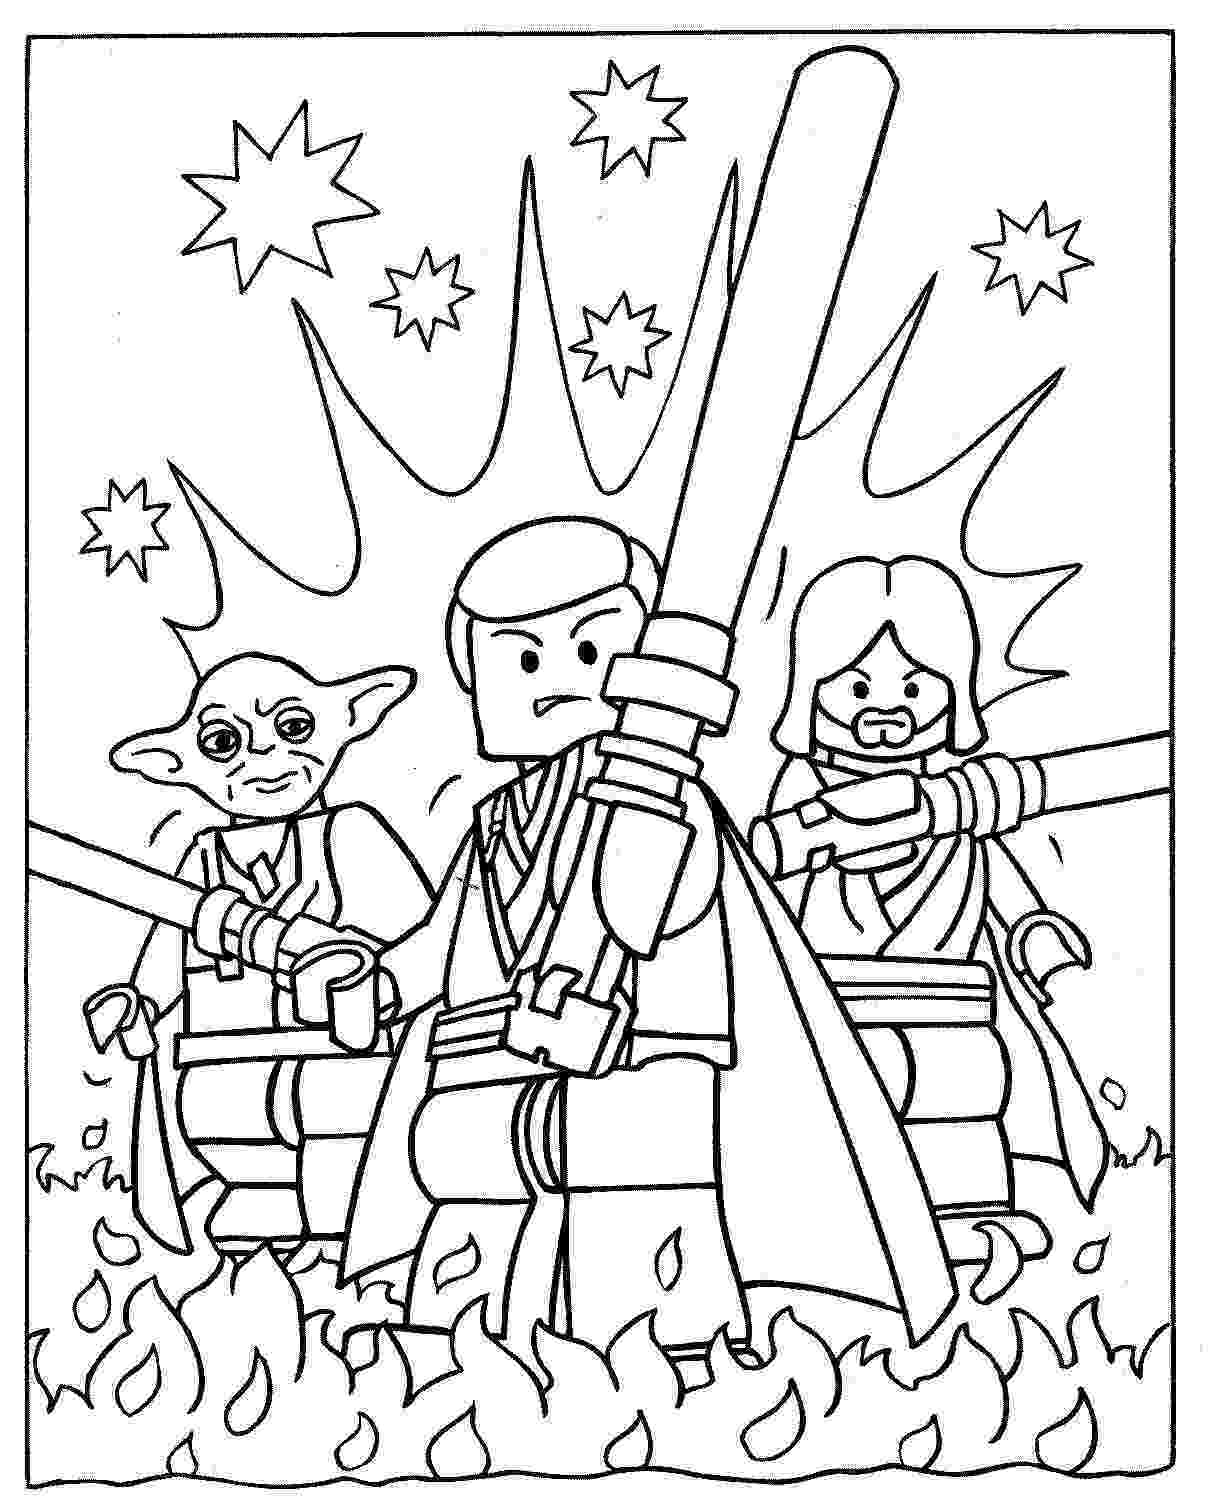 star wars print out coloring pages star wars coloring pages the force awakens coloring pages wars out coloring pages star print